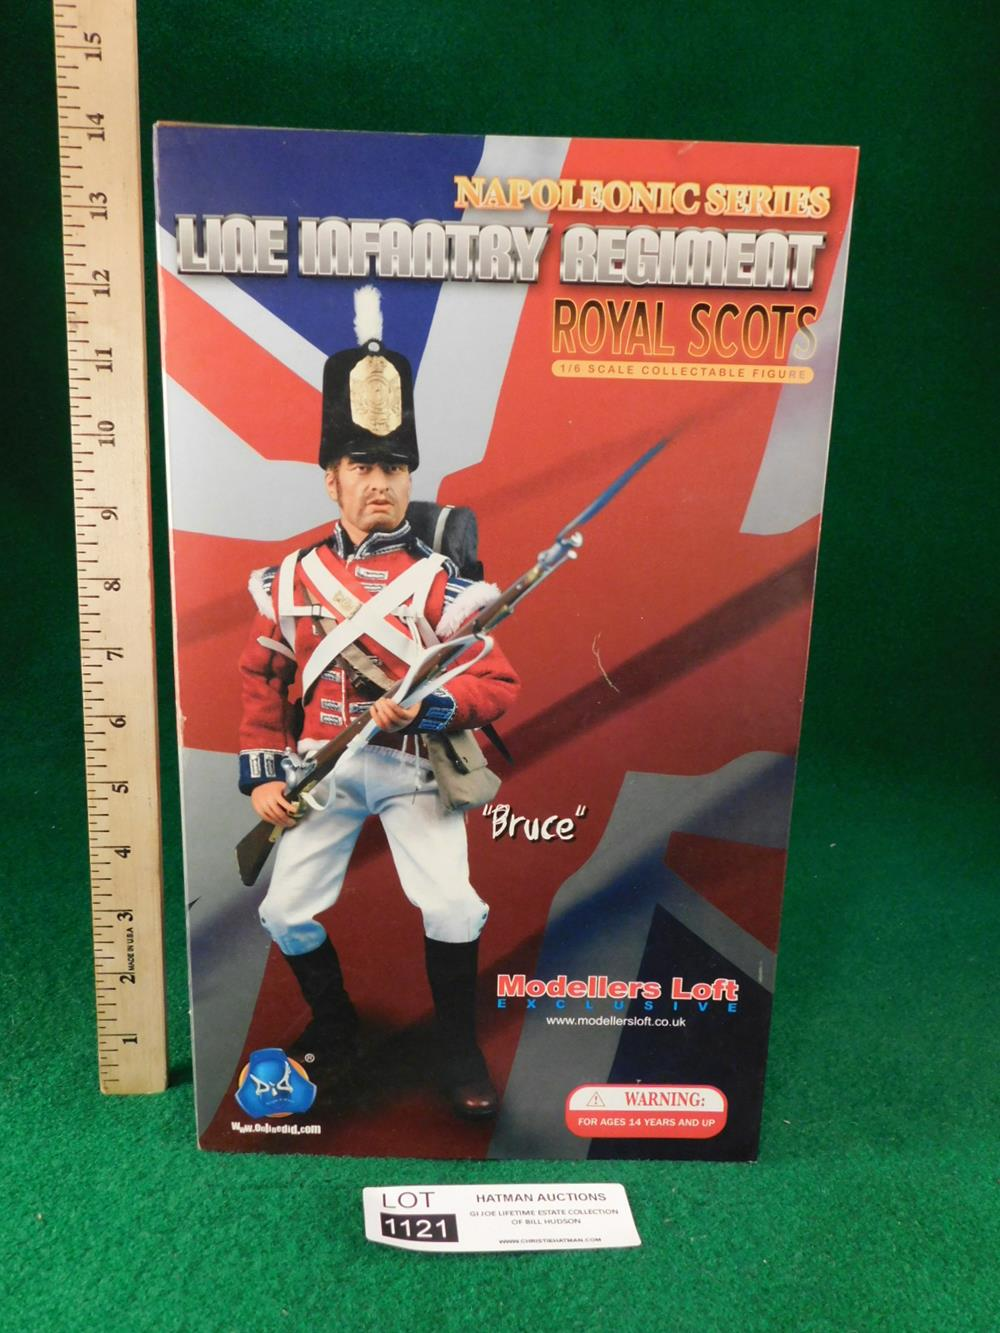 ROYAL SCOTS BRUCE NAPOLEONIC SERIES